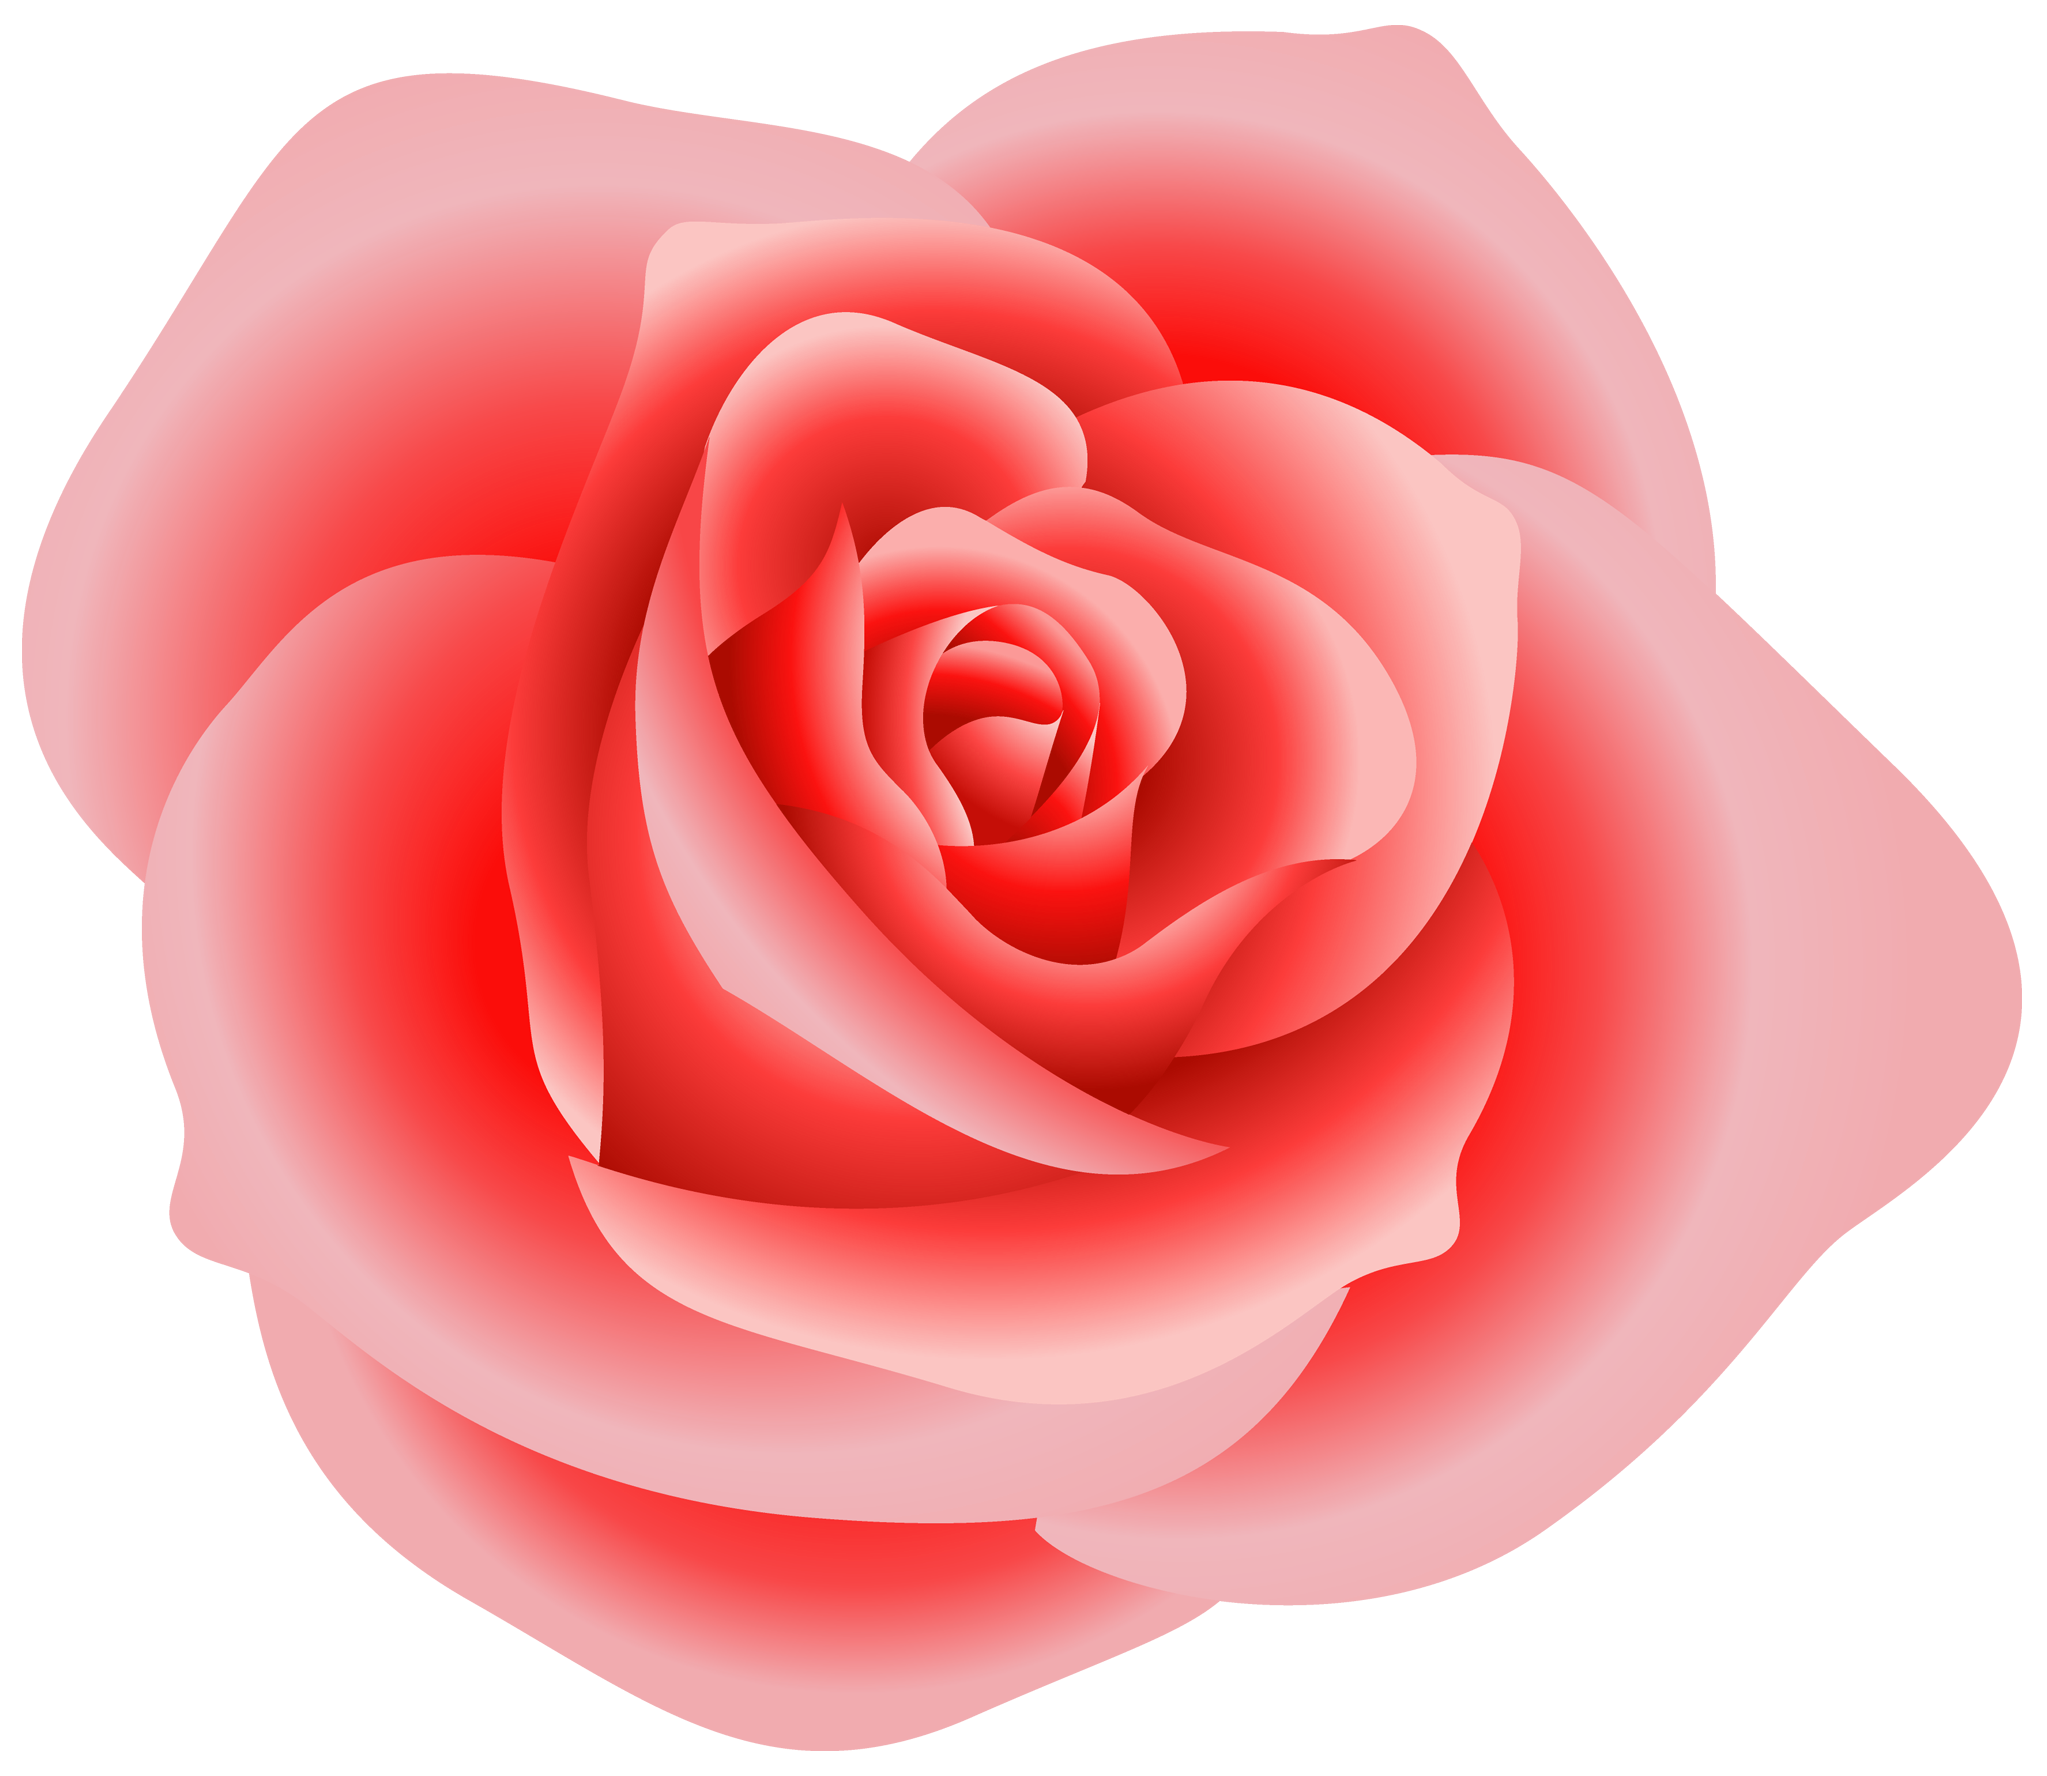 Roses rose clip art vector images